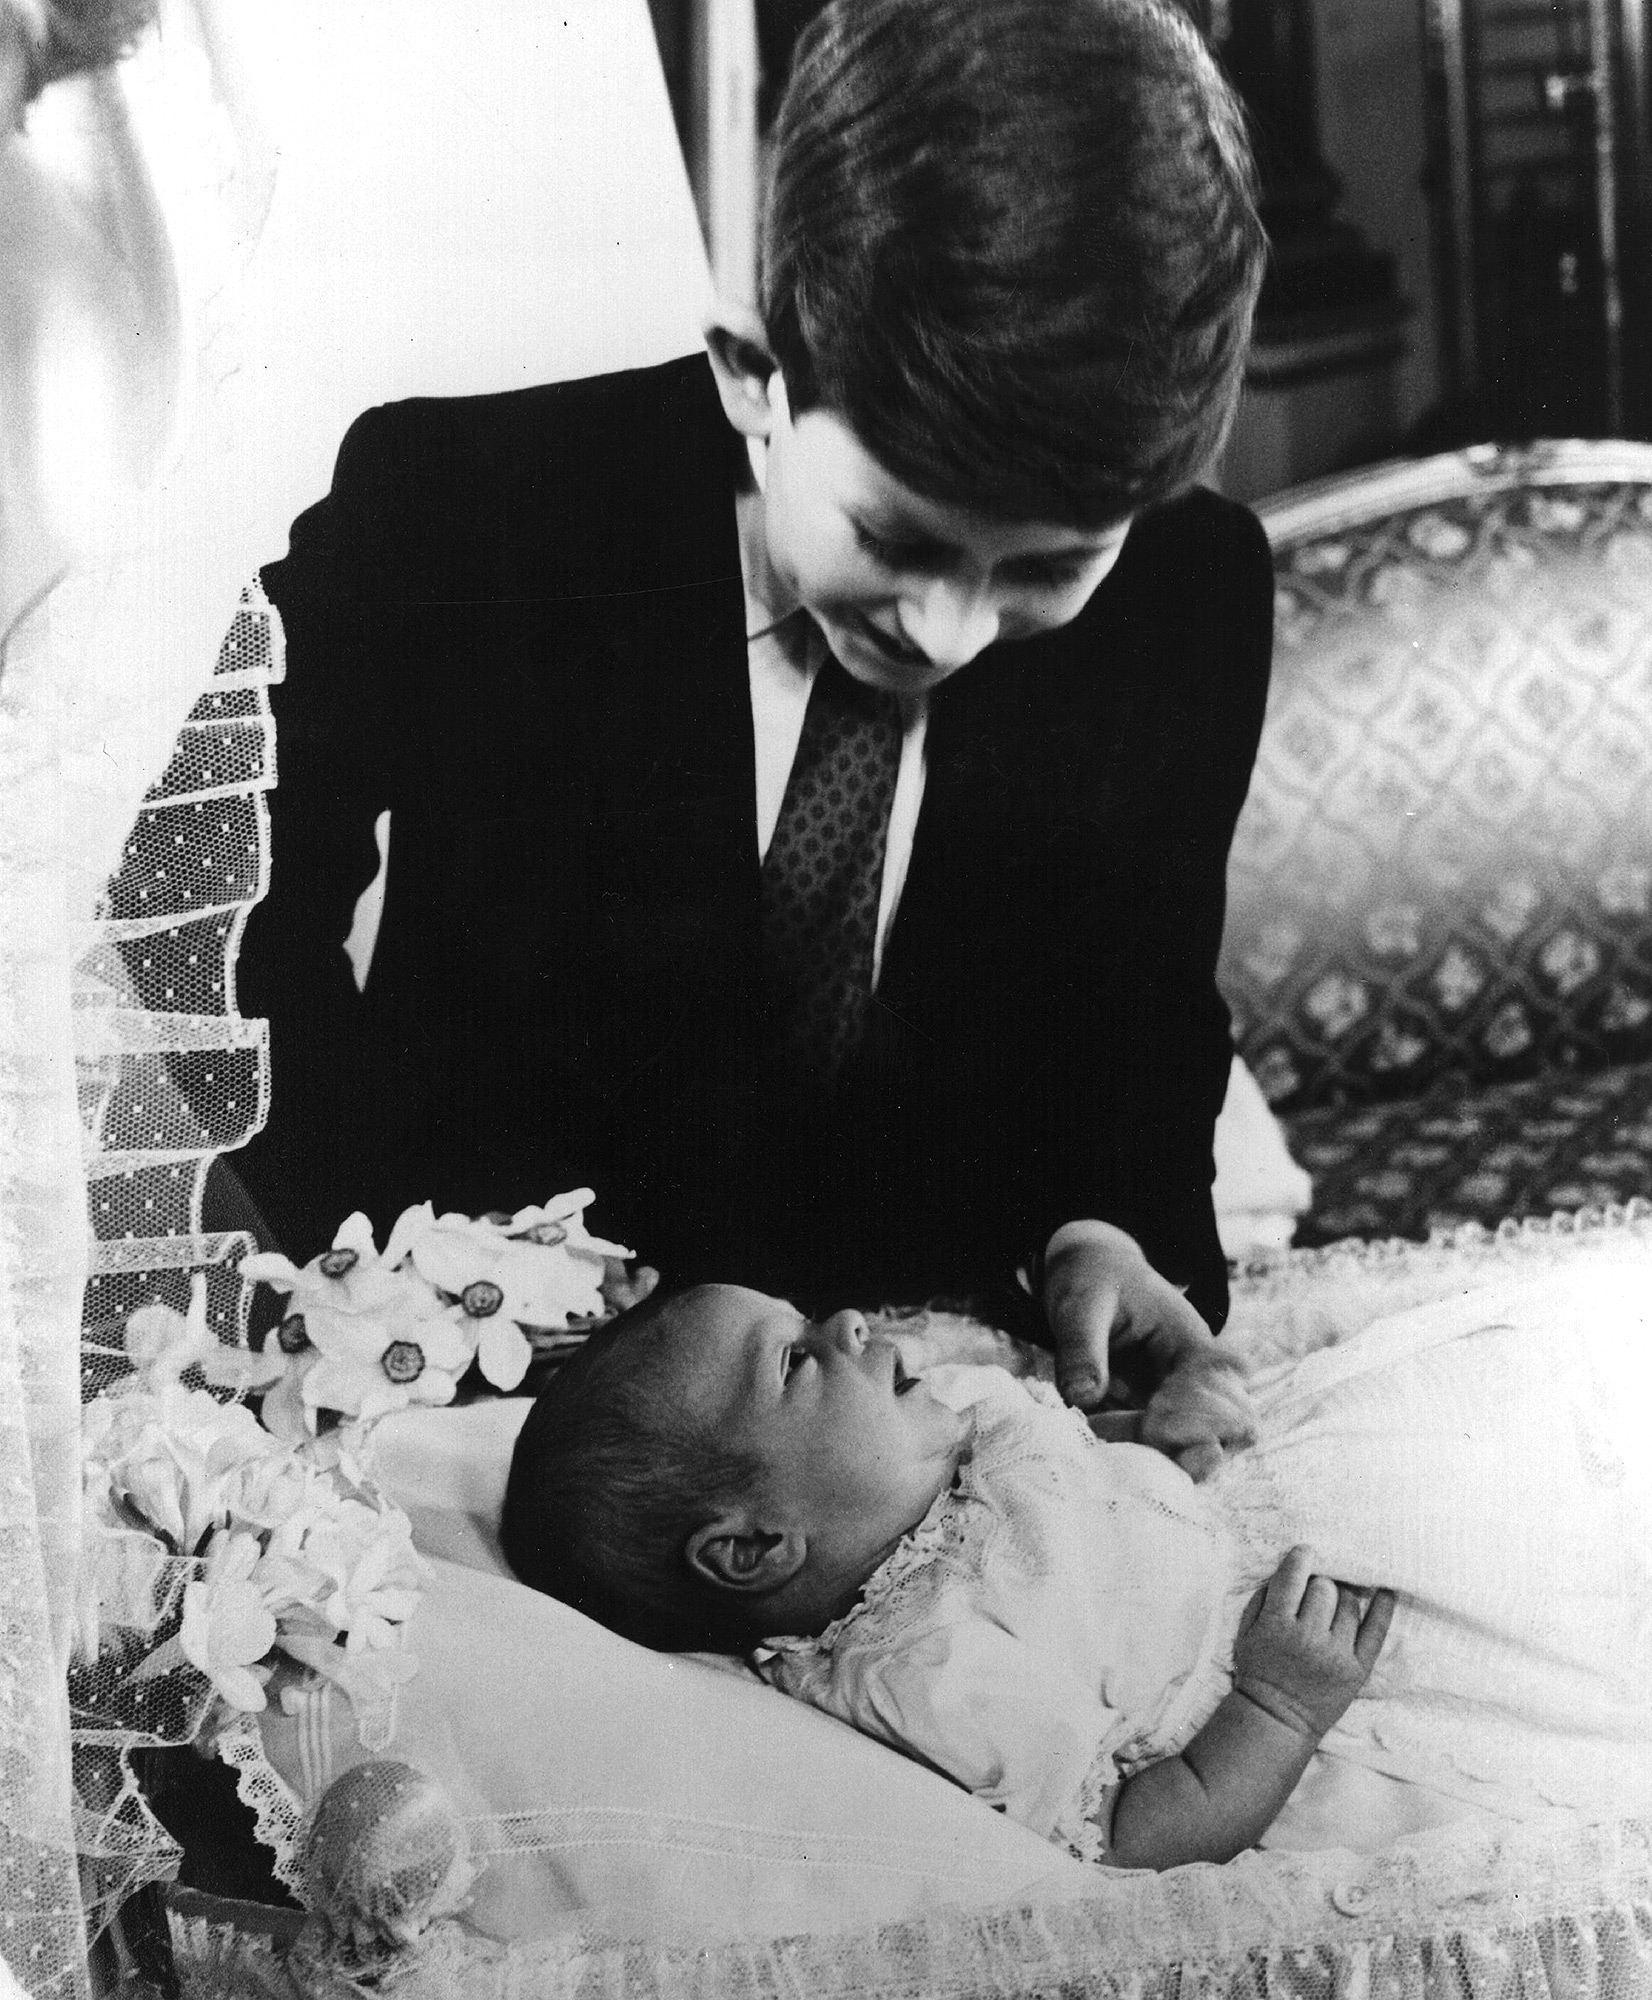 Prince Charles admiring his baby brother, Prince Andrew